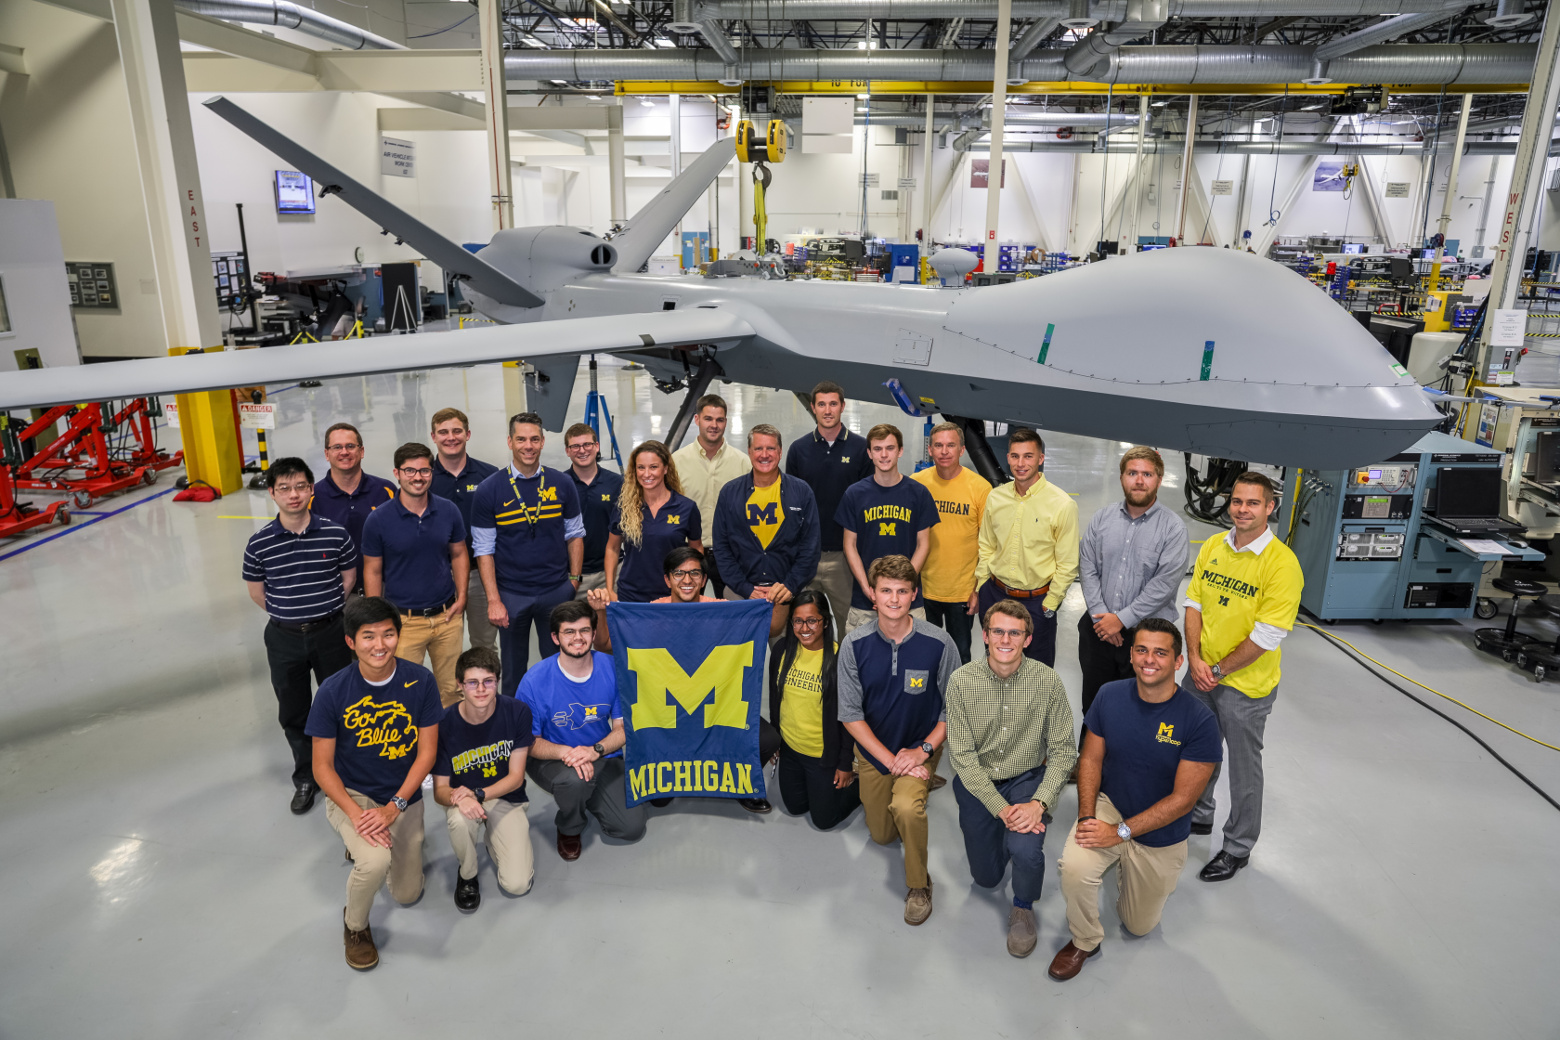 Michigan interns stand with Michigan alumni at GA stand in front of a MQ-9 Reaper (Predator B).